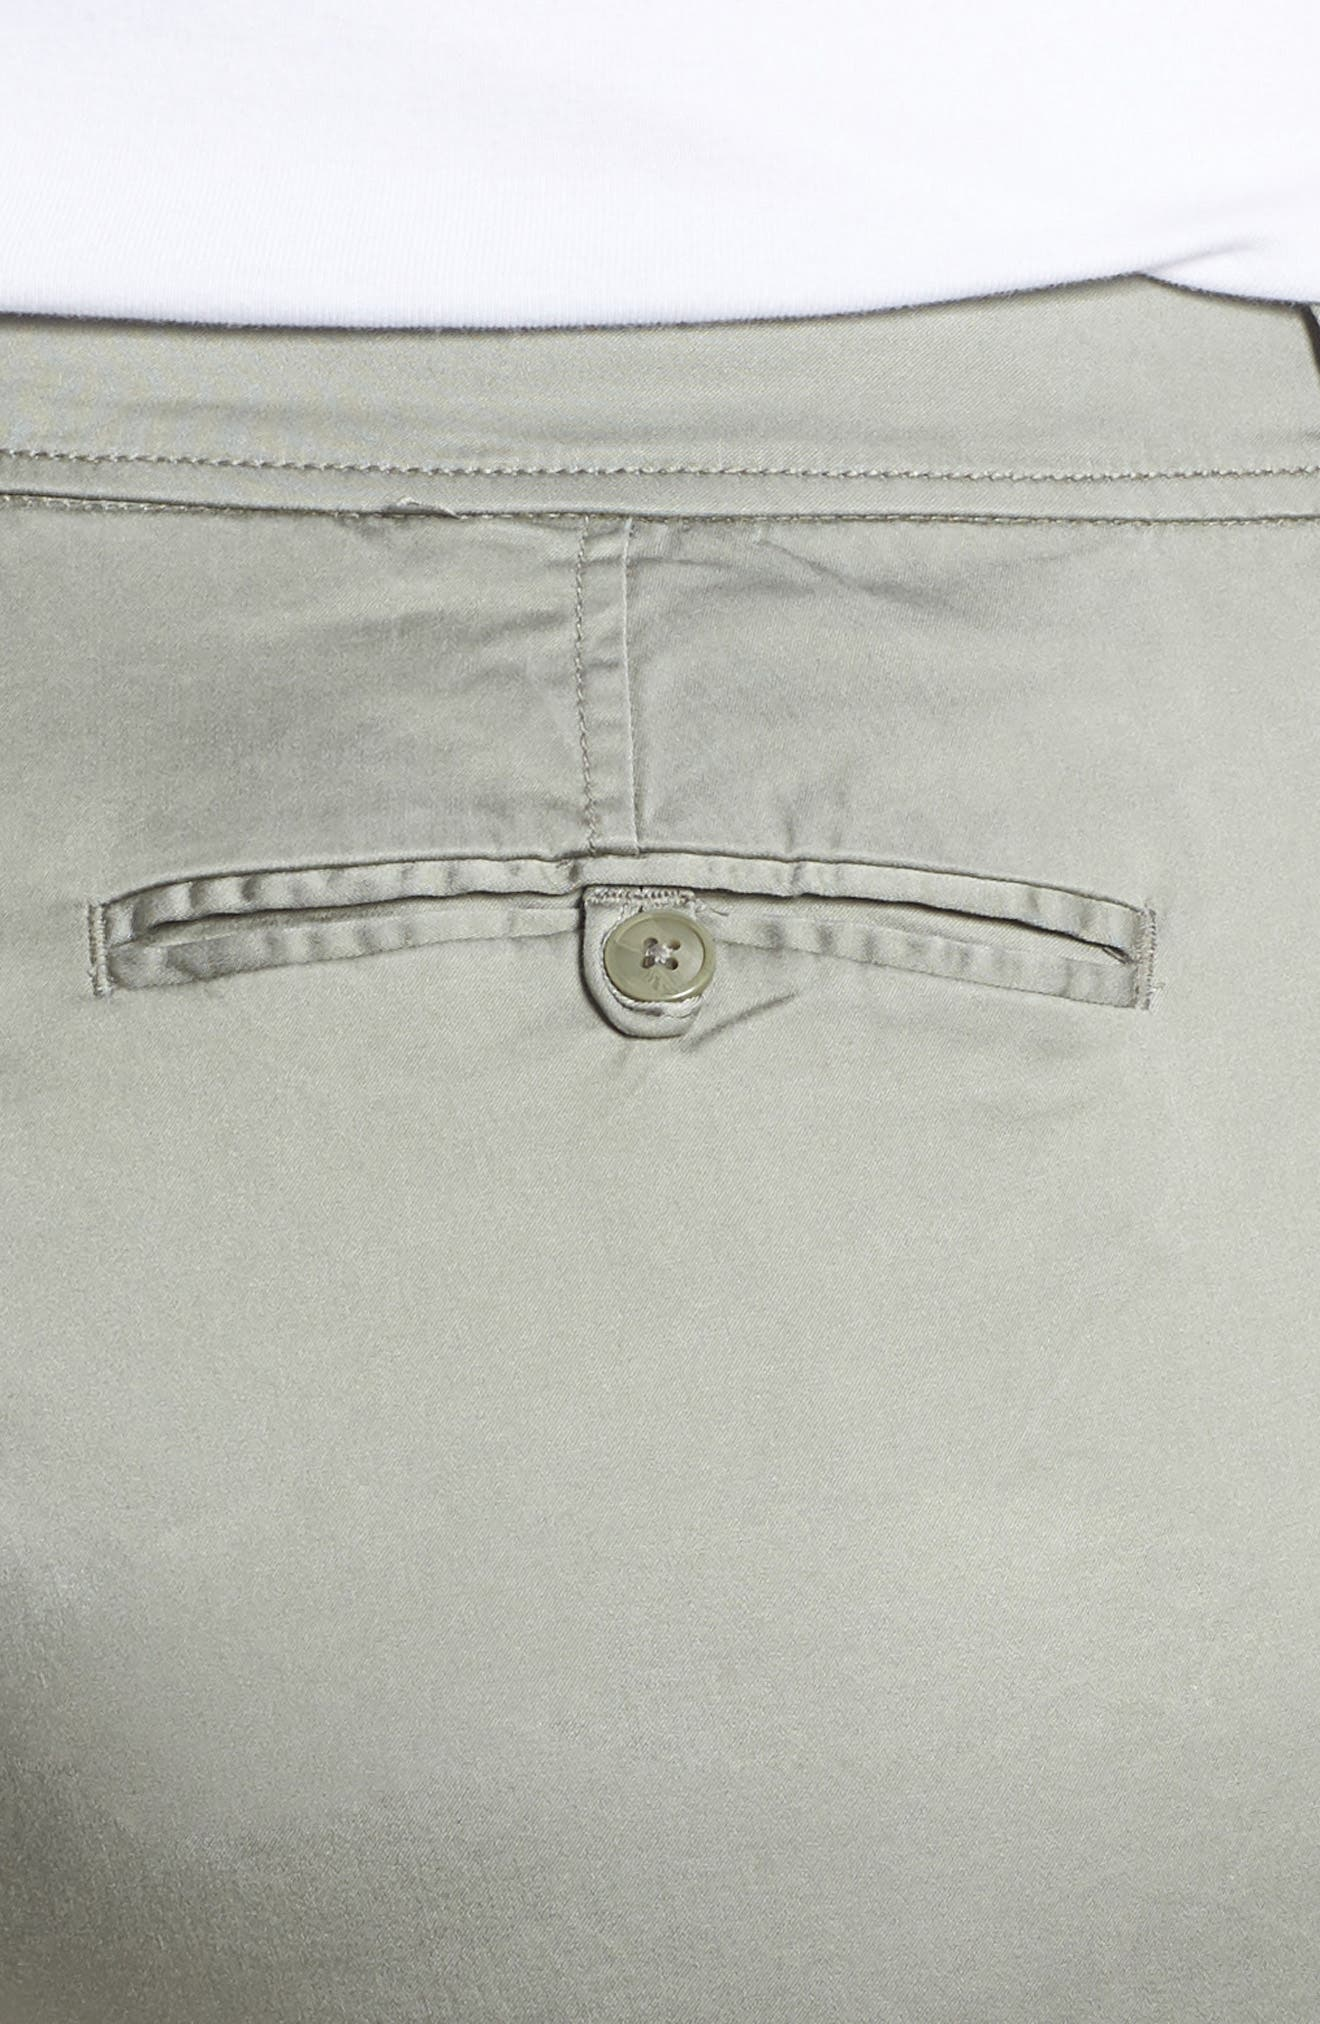 Stretch Cotton Blend Pants,                             Alternate thumbnail 4, color,                             Faded Seagrass